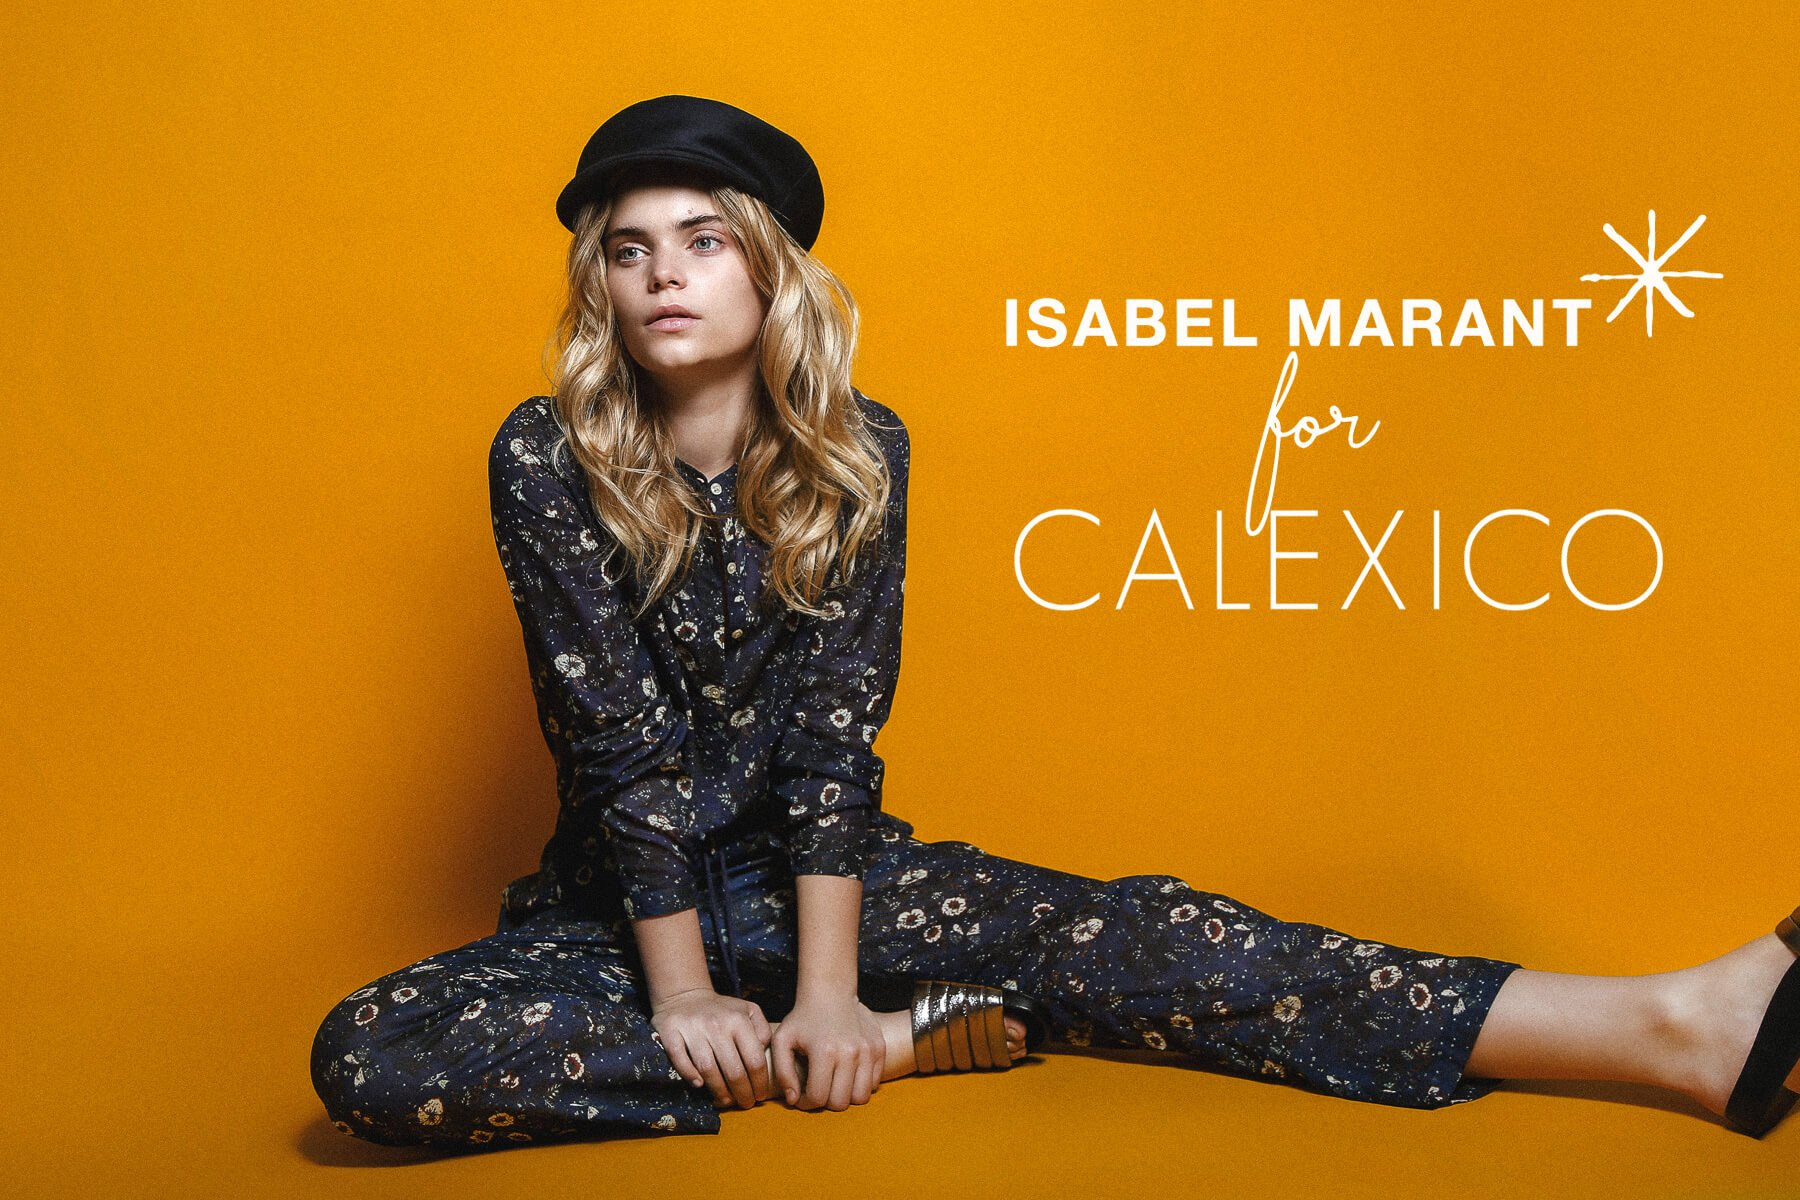 Isabel Marant Etoile For Calexico Australia by Evelina Fietisova. Evelina Photography shooting Bec Craven and TJ Richards for Calexico Boutique. Editorial Isabel Marant 2018 Brisbane Fashion Photography, Australia